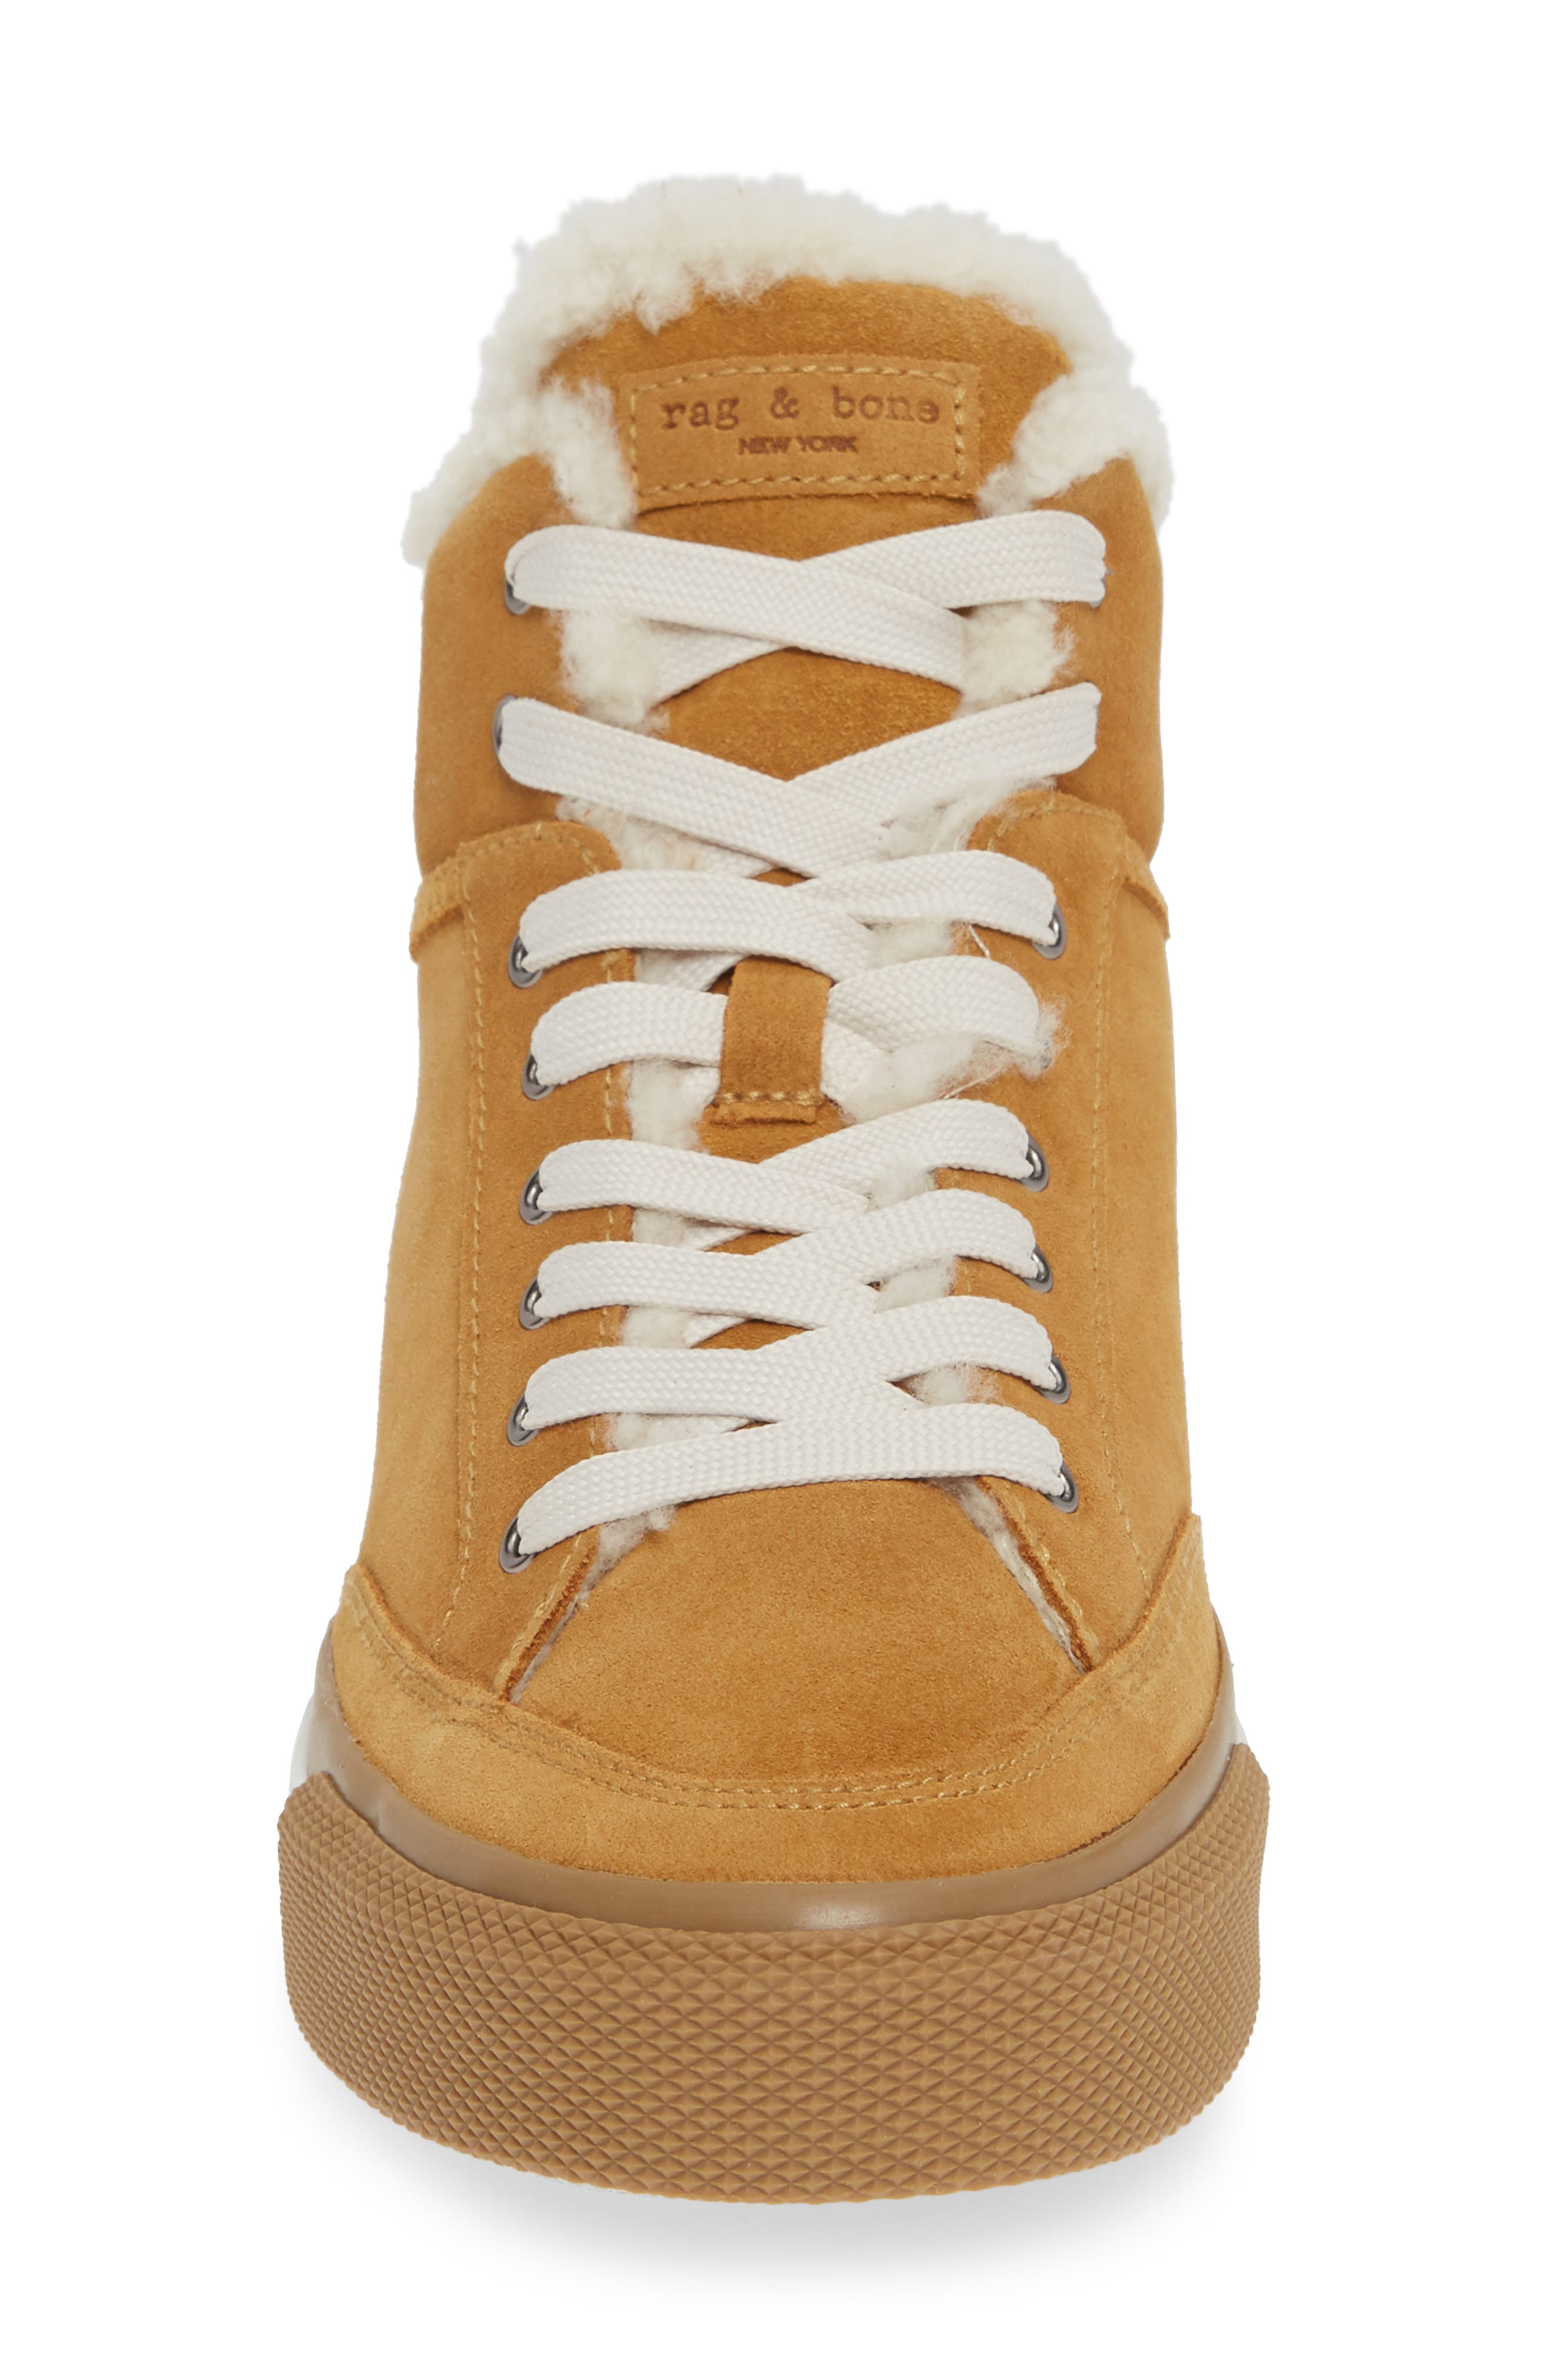 Army High Top Sneaker,                             Alternate thumbnail 4, color,                             OAK SUEDE